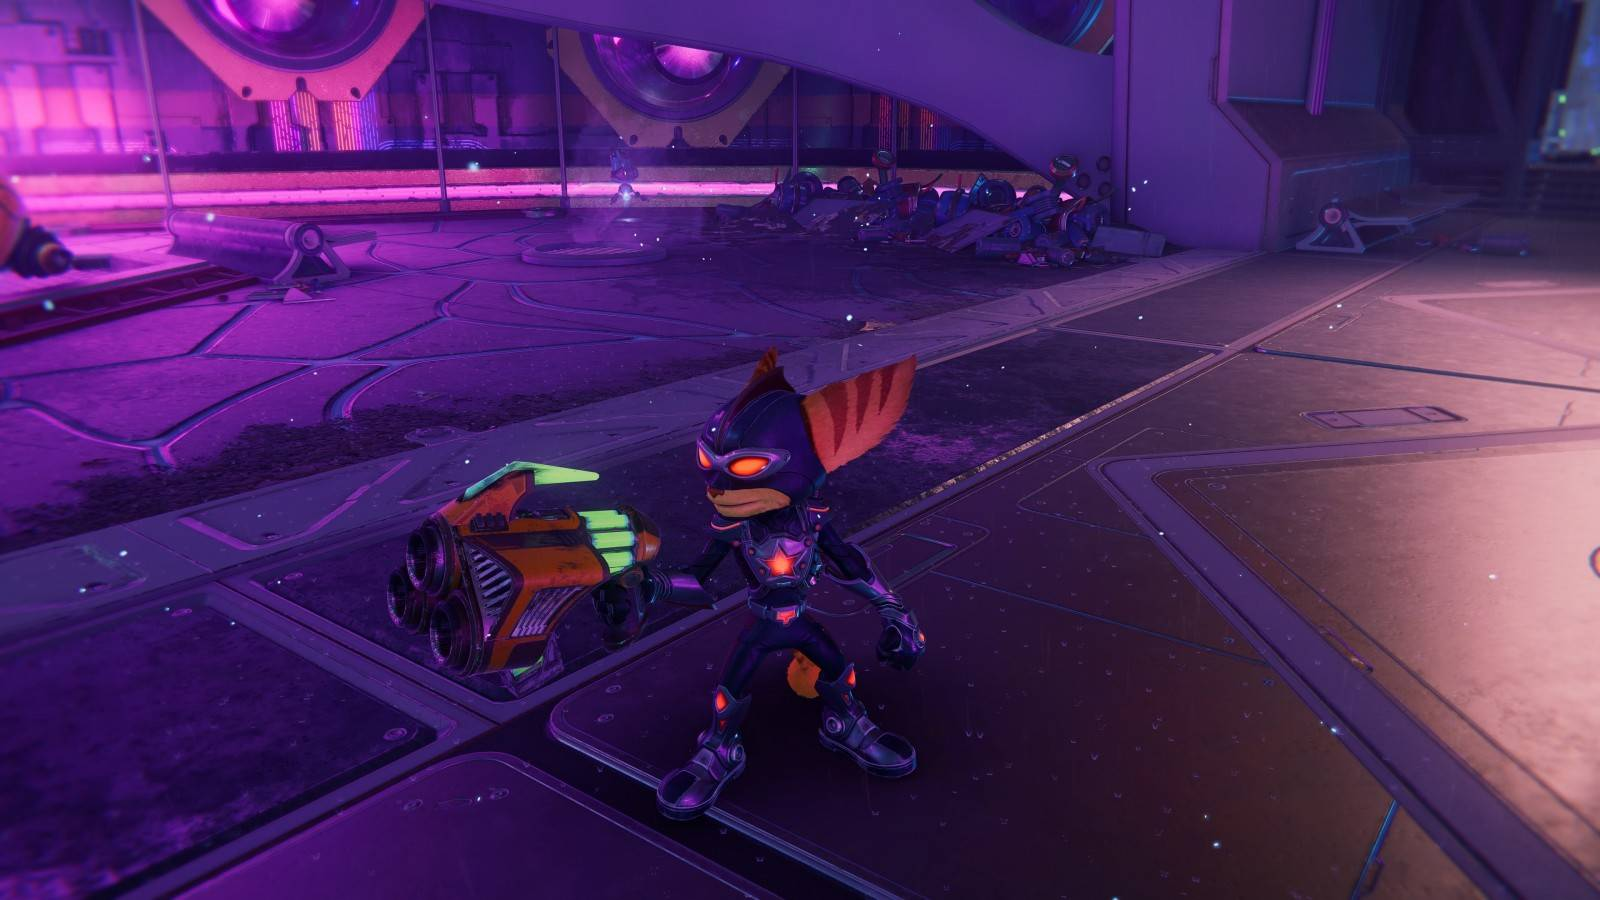 Reseña: Ratchet and Clank: Rift Apart (PlayStation 5) 16